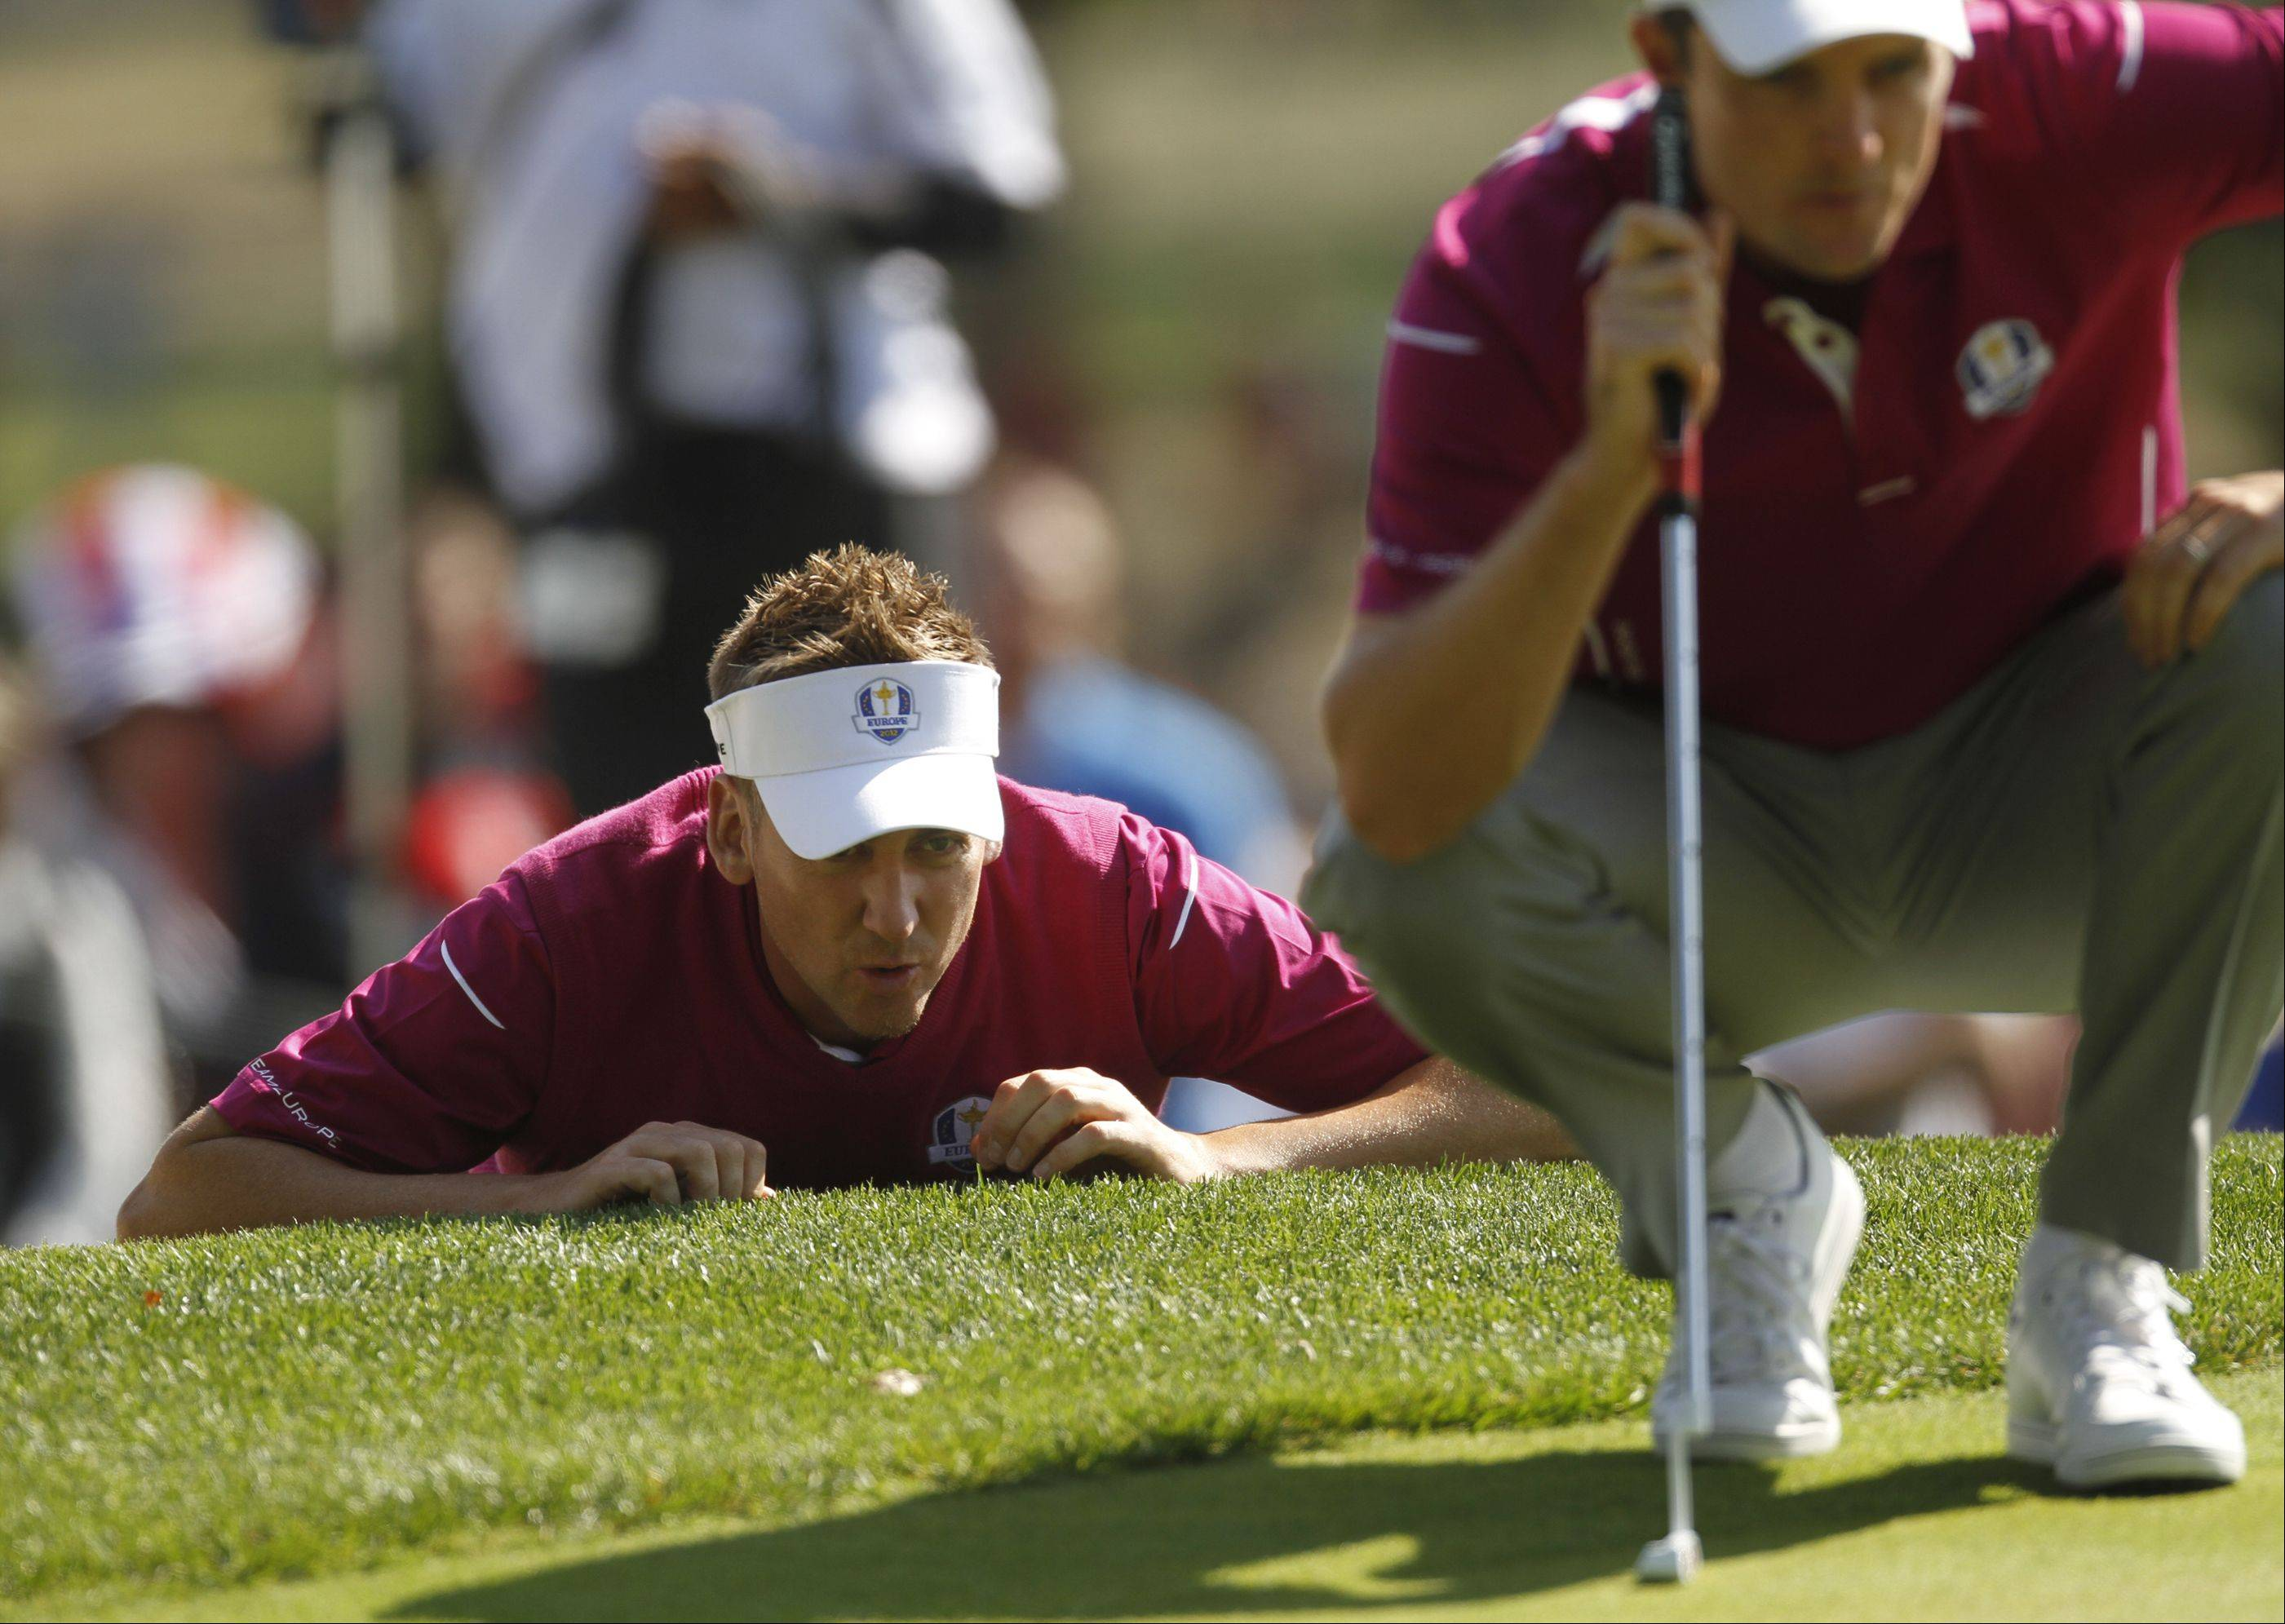 Ian Poulter, left, helps, helps Justin Rose line up his putt on the 16th hole Saturday morning during Day 2 of the Ryder Cup at Medinah Country Club.